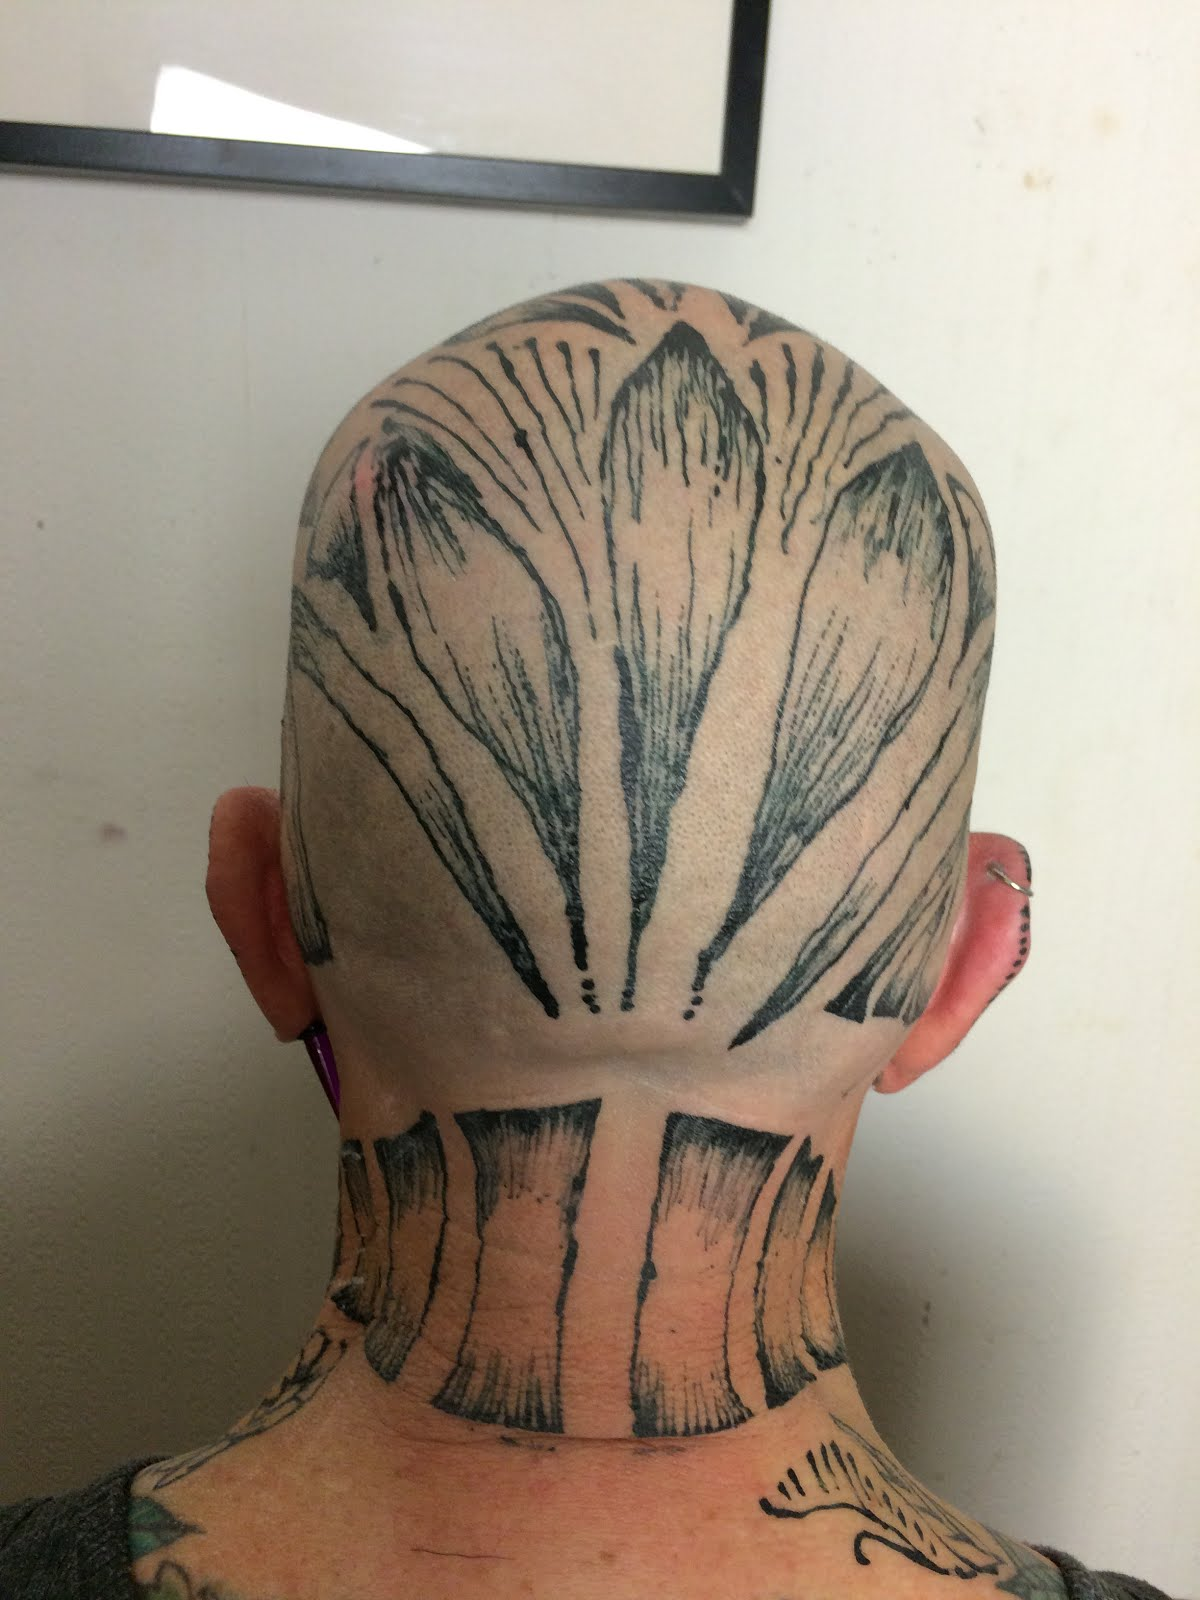 The back of my head in November 2015